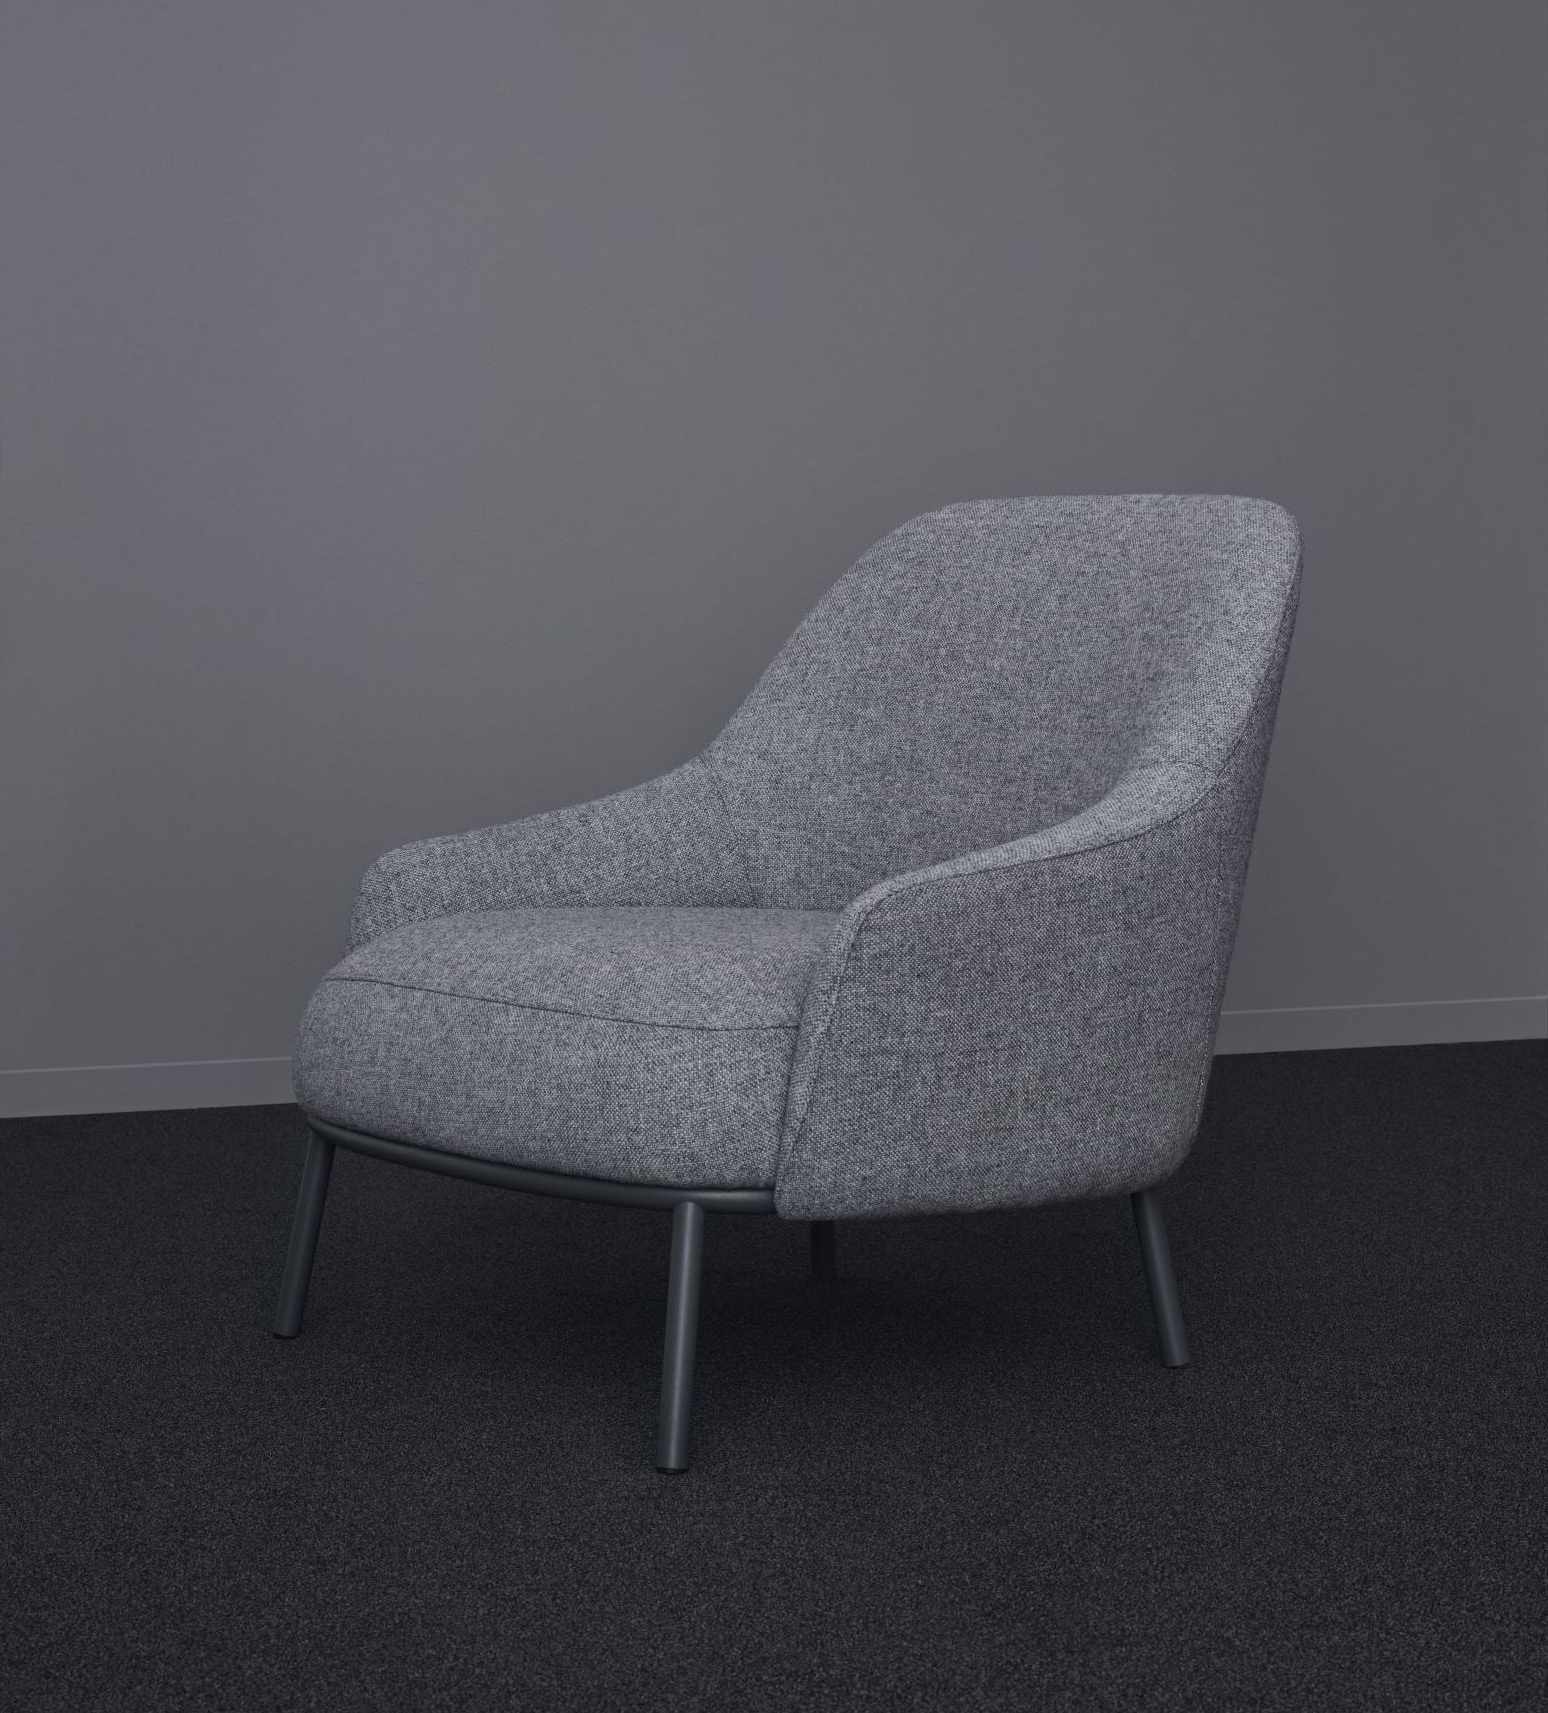 Shift easychair classic by Debiasi Sandri for Offecct